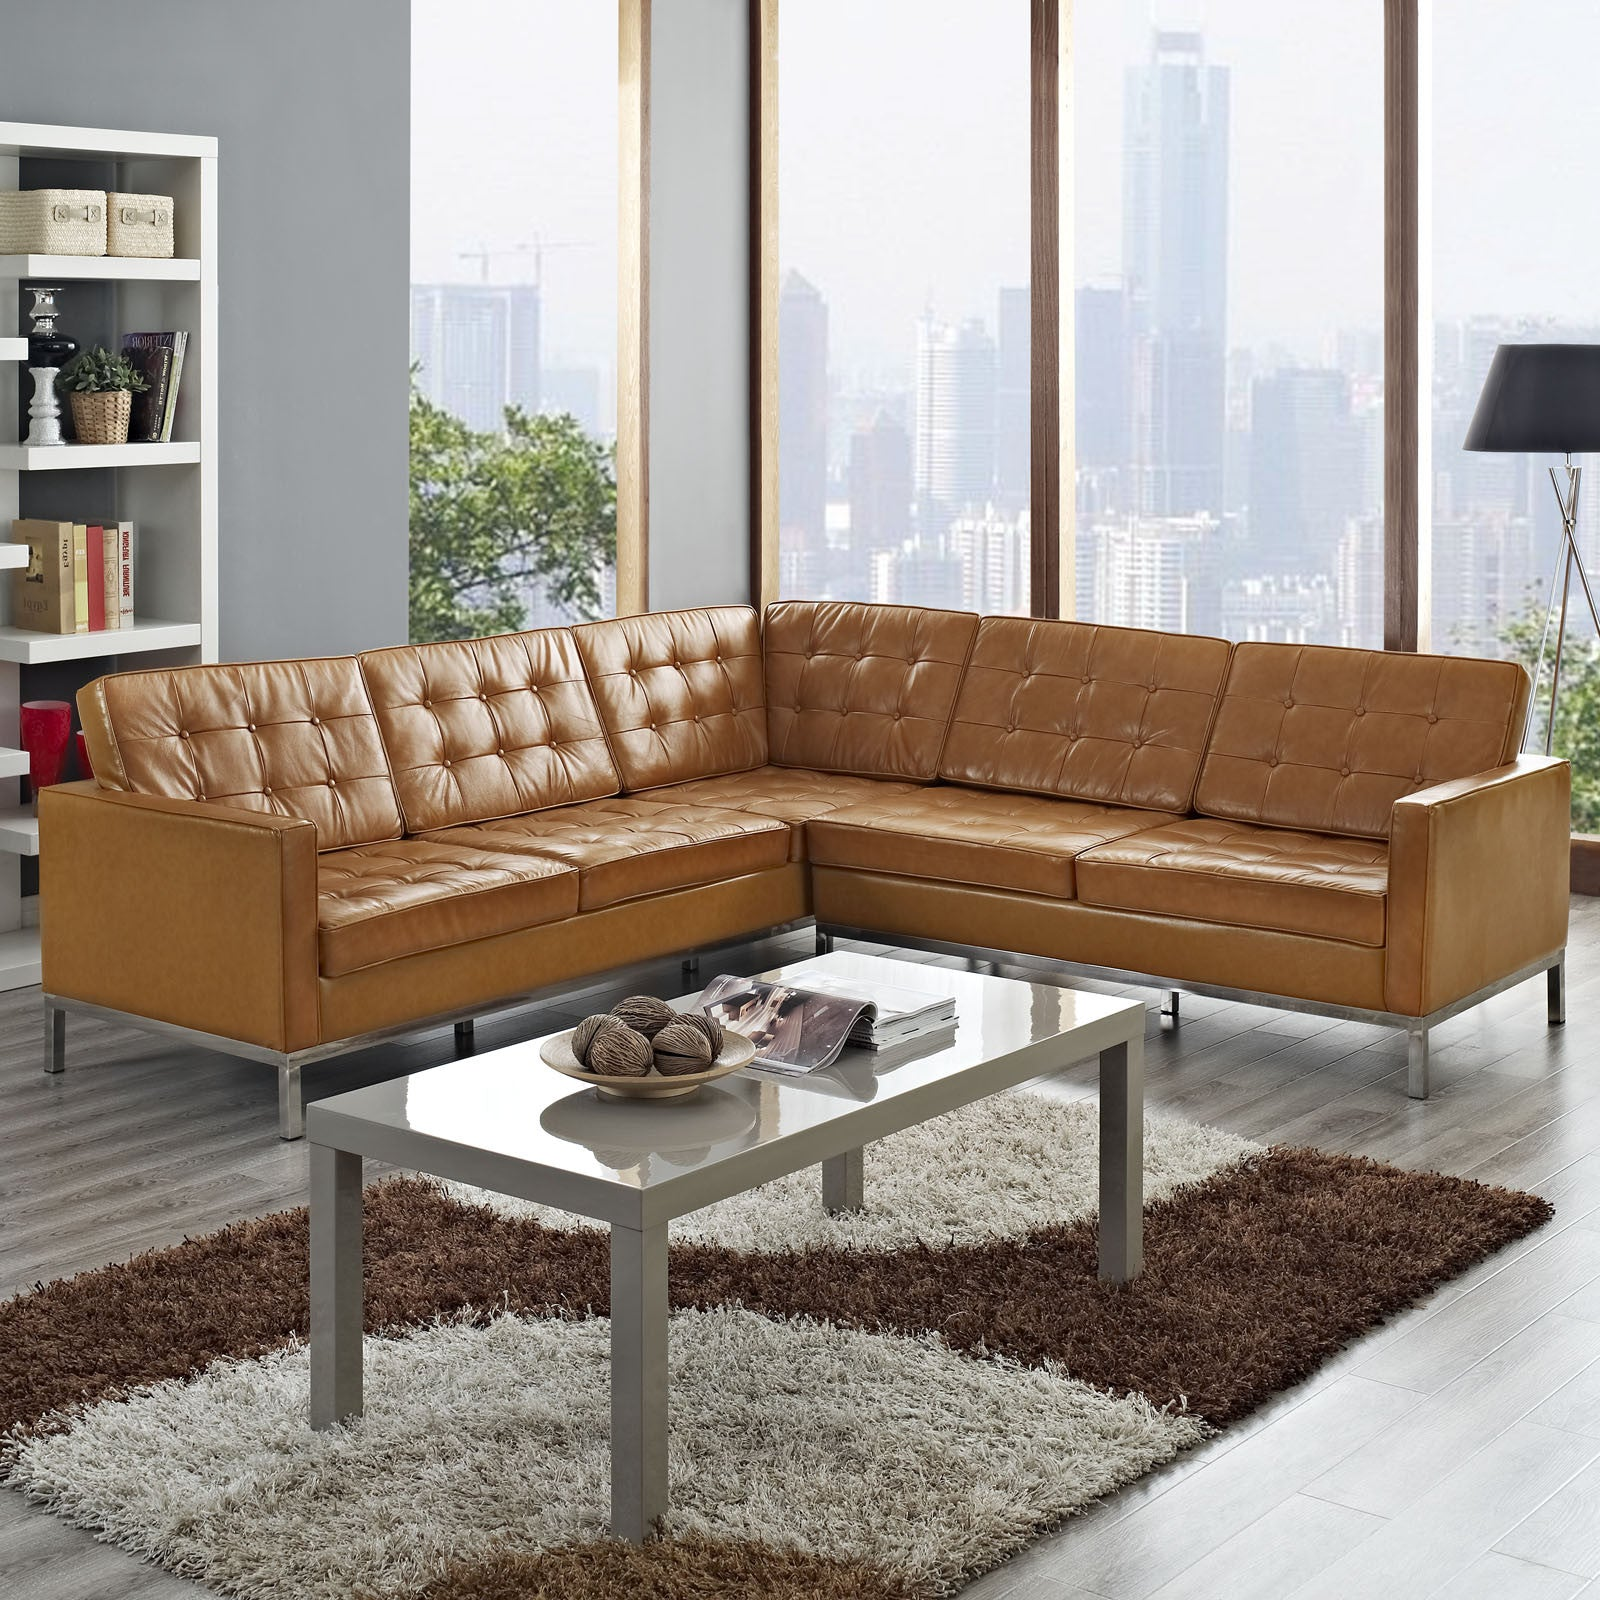 Lyte L Shaped Leather Sectional Sofa Tan FROY